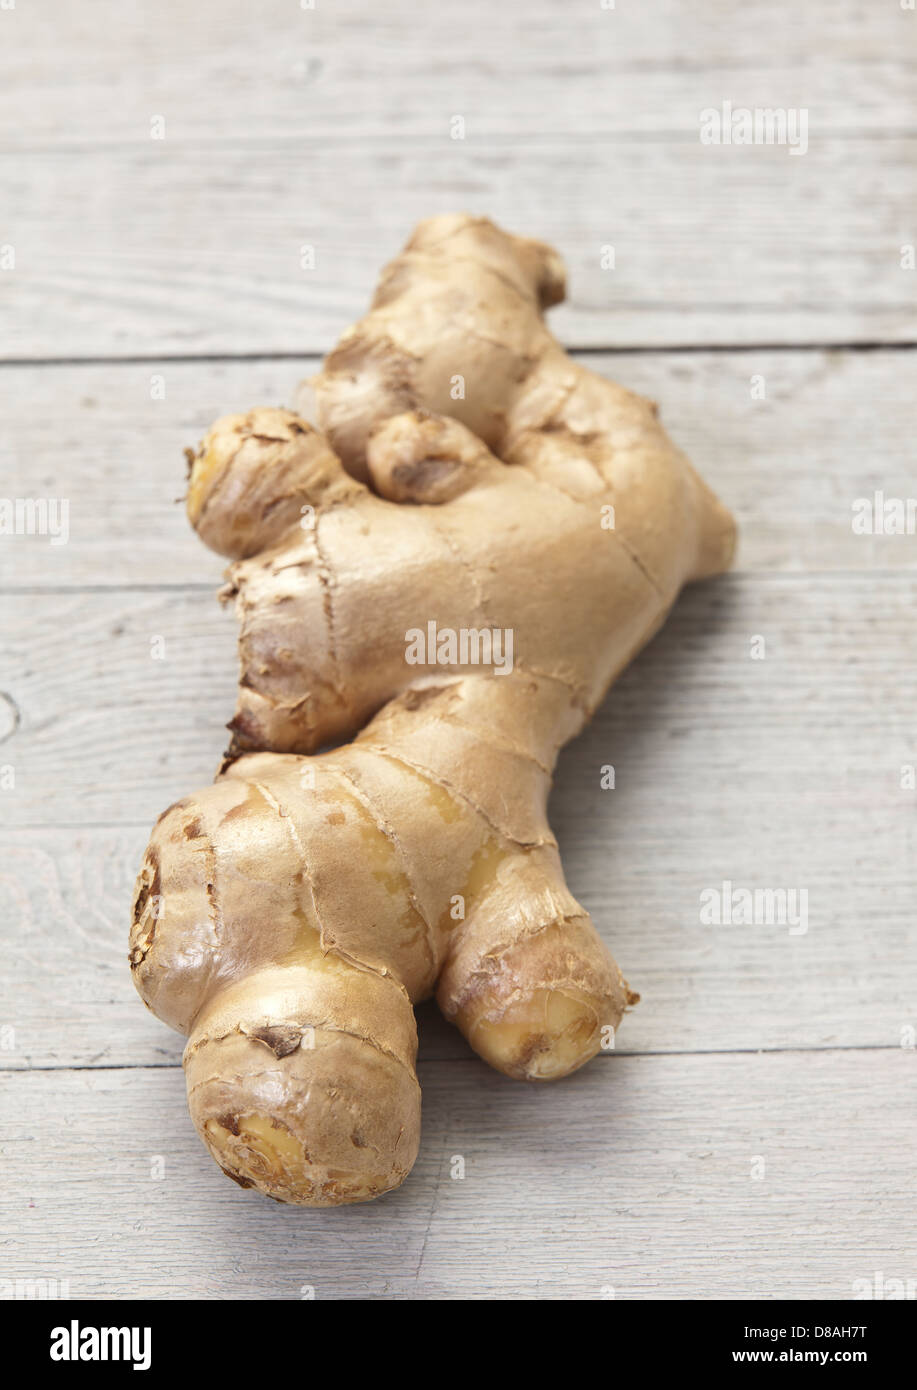 A fresh uncut ginger root on a rustic wood surface. - Stock Image